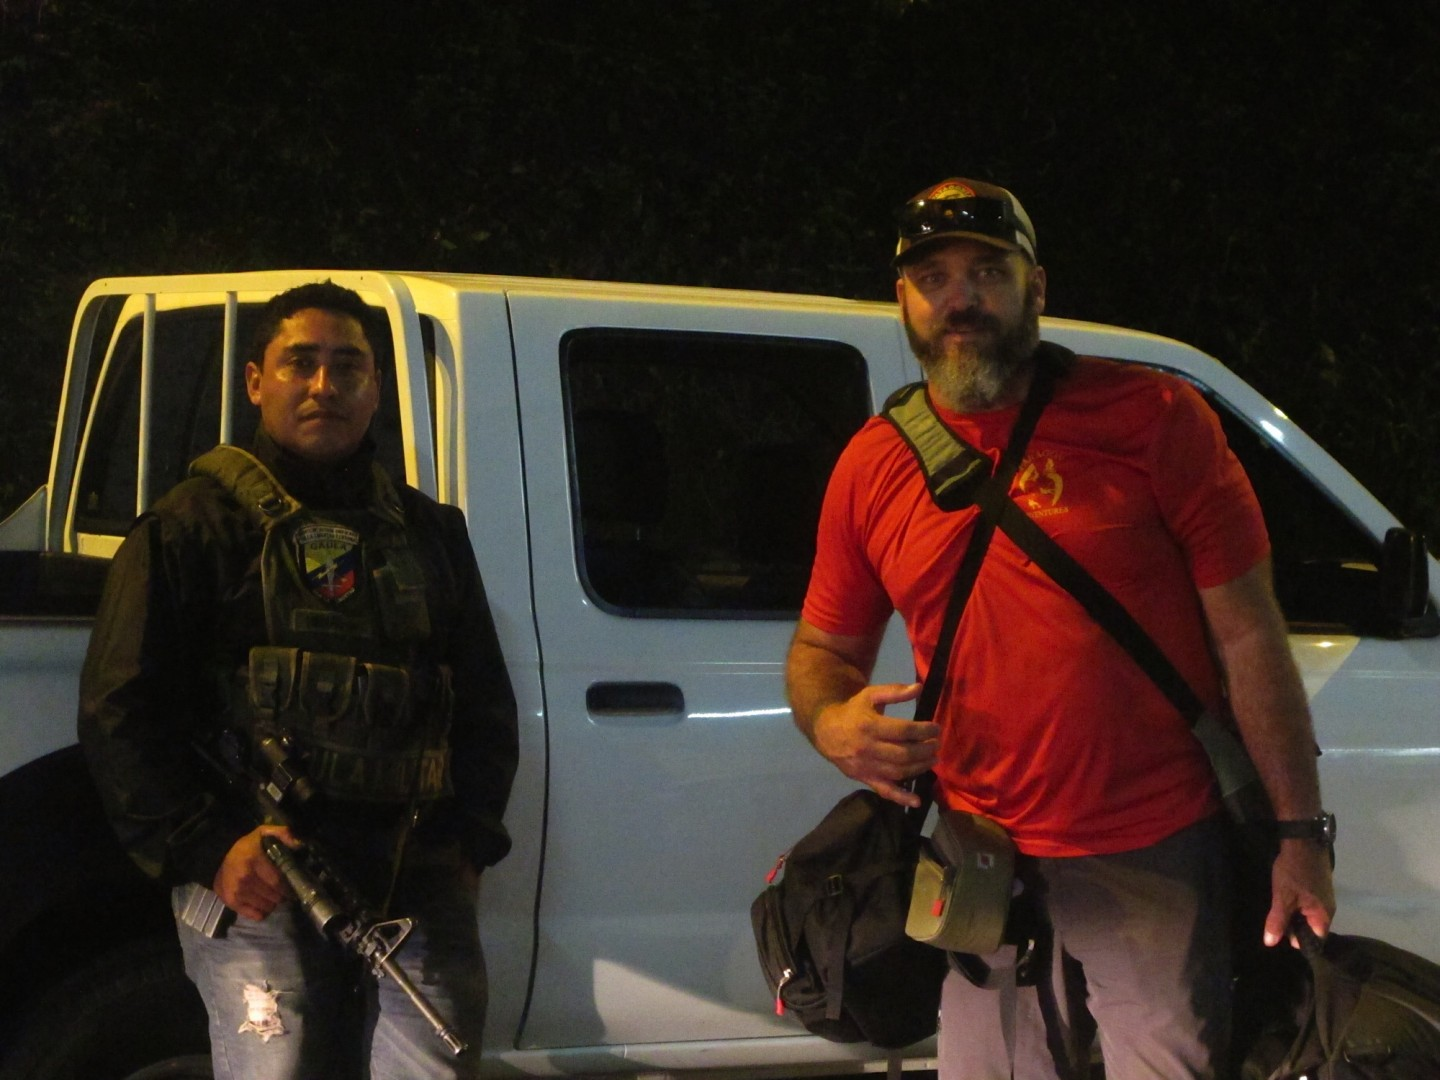 Photojournalist Dallas Hyland with unnamed armed Colombian government escort. The entire team was escorted to the airport for their protection after the busts went down, Oct. 2014 | Photo courtesy of Dallas Hyland, St. George News